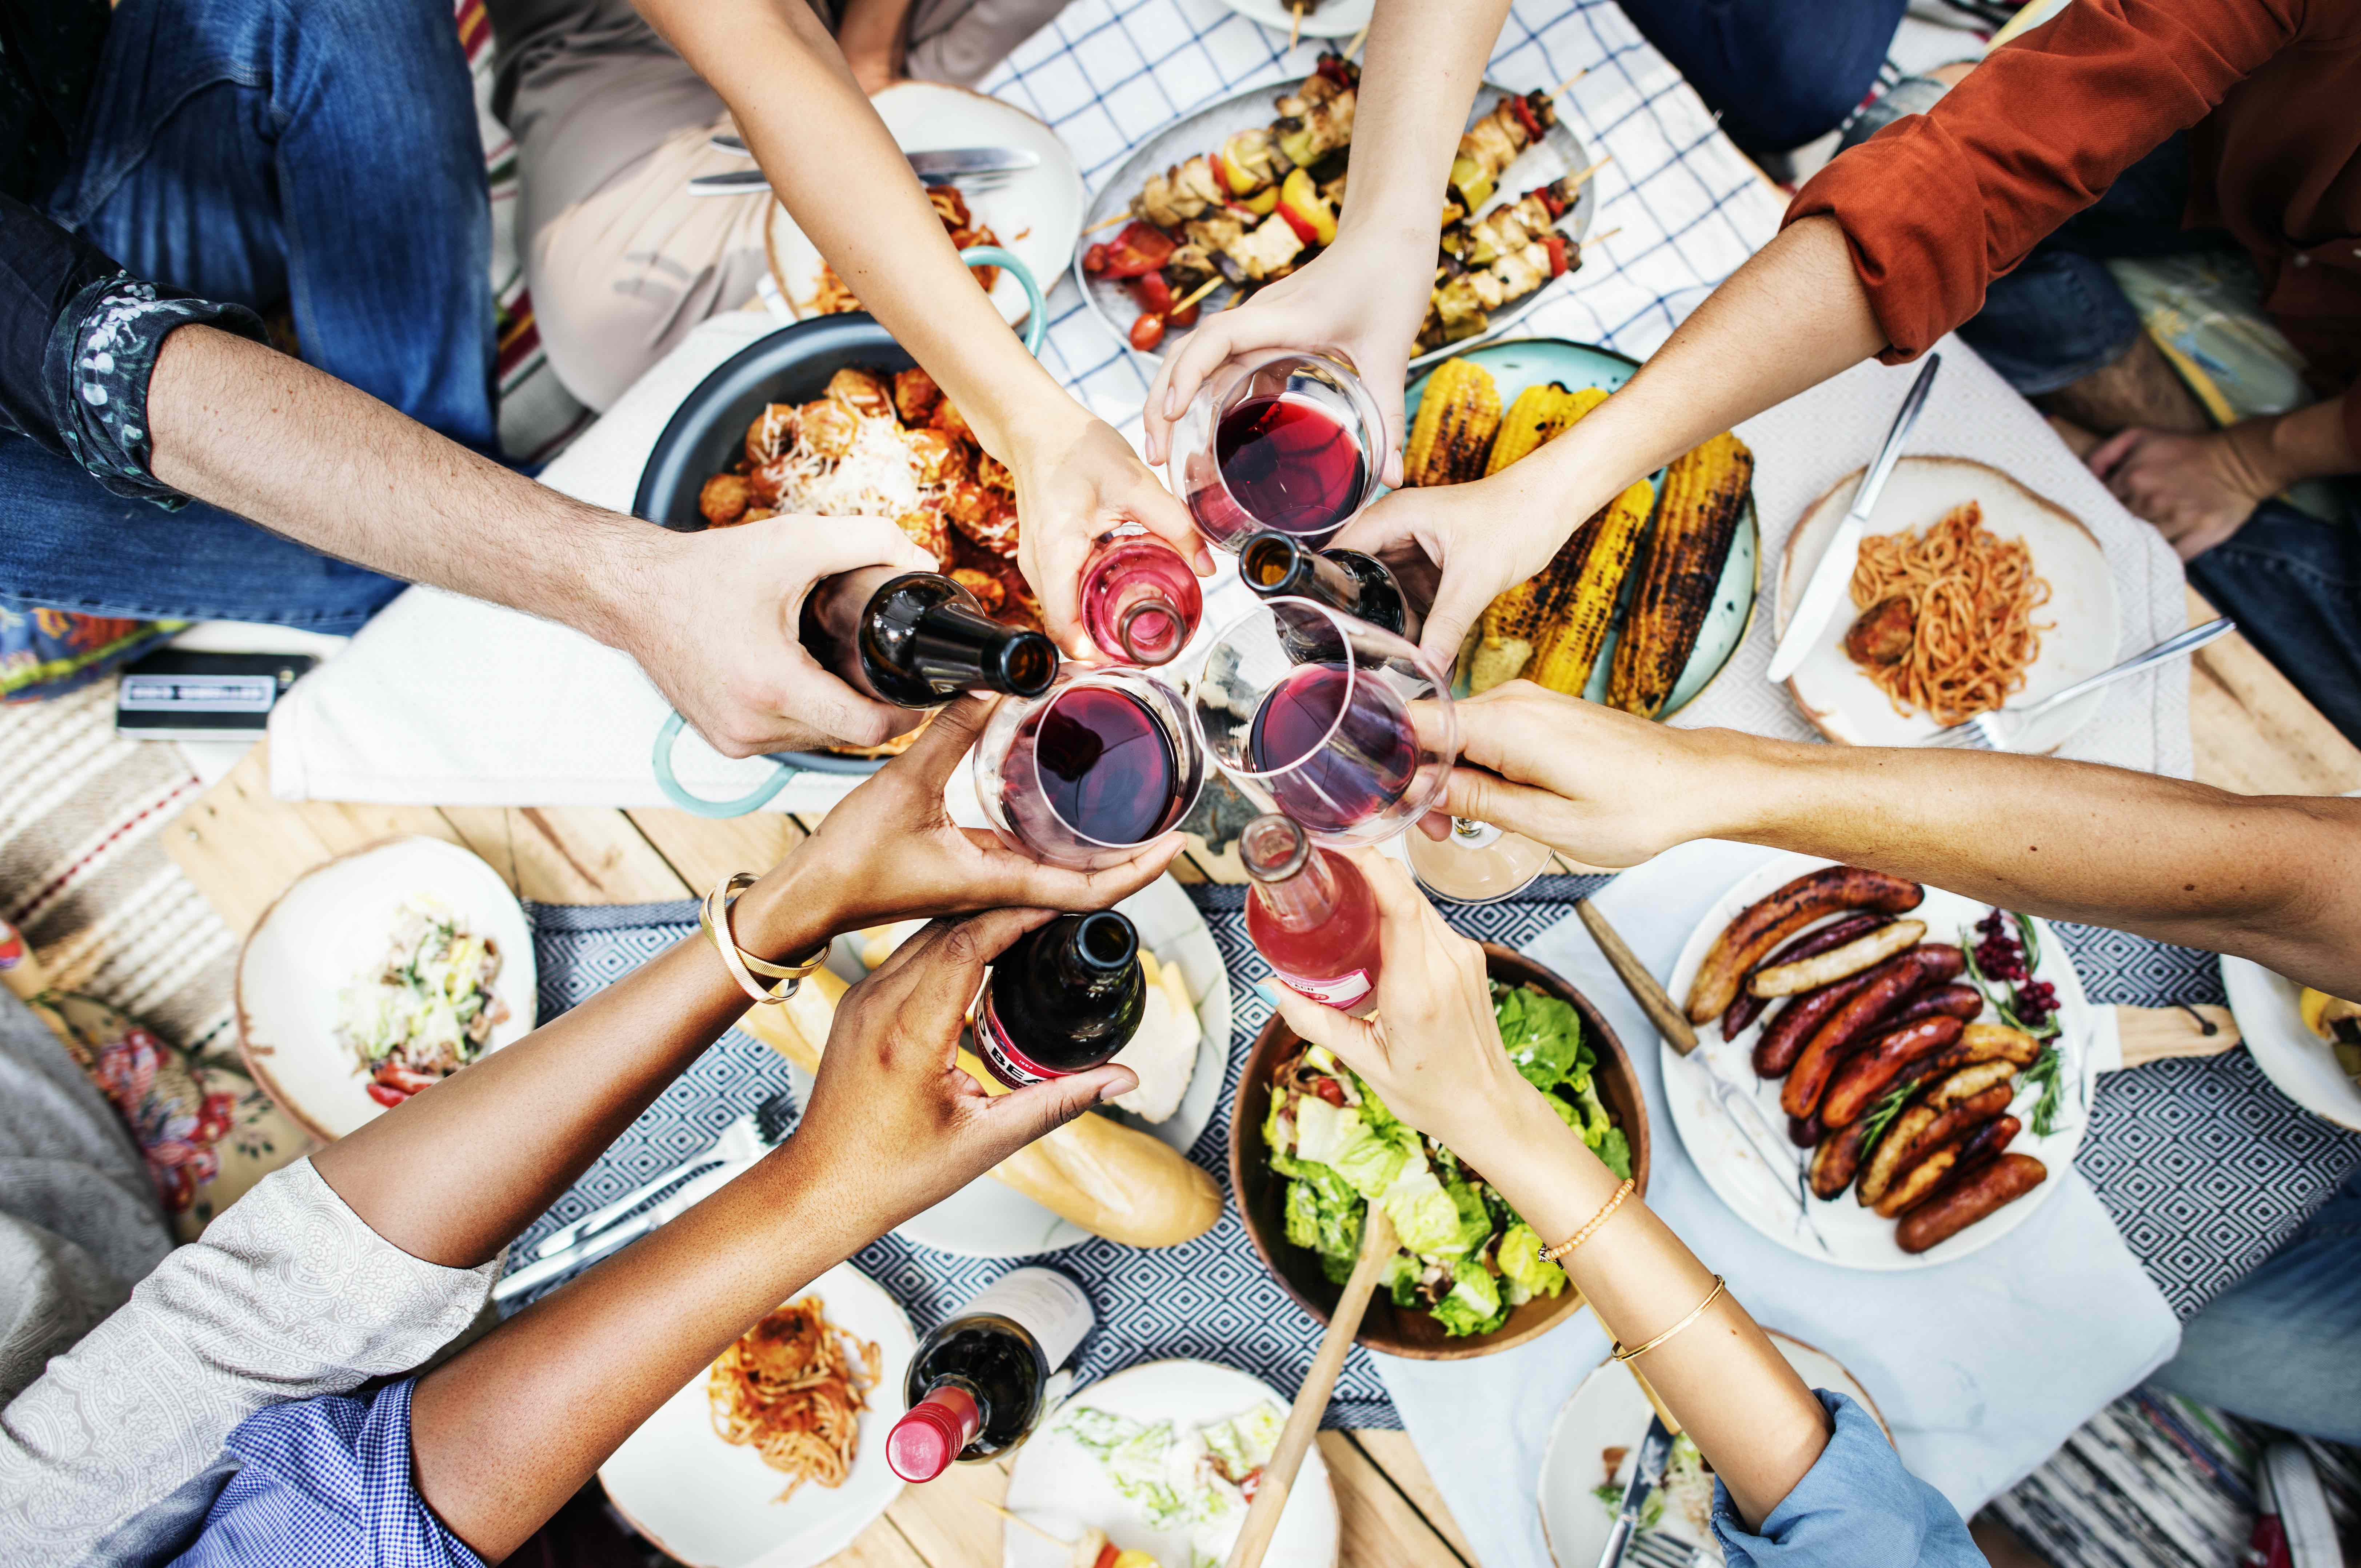 a diverse family sharing food and drinks